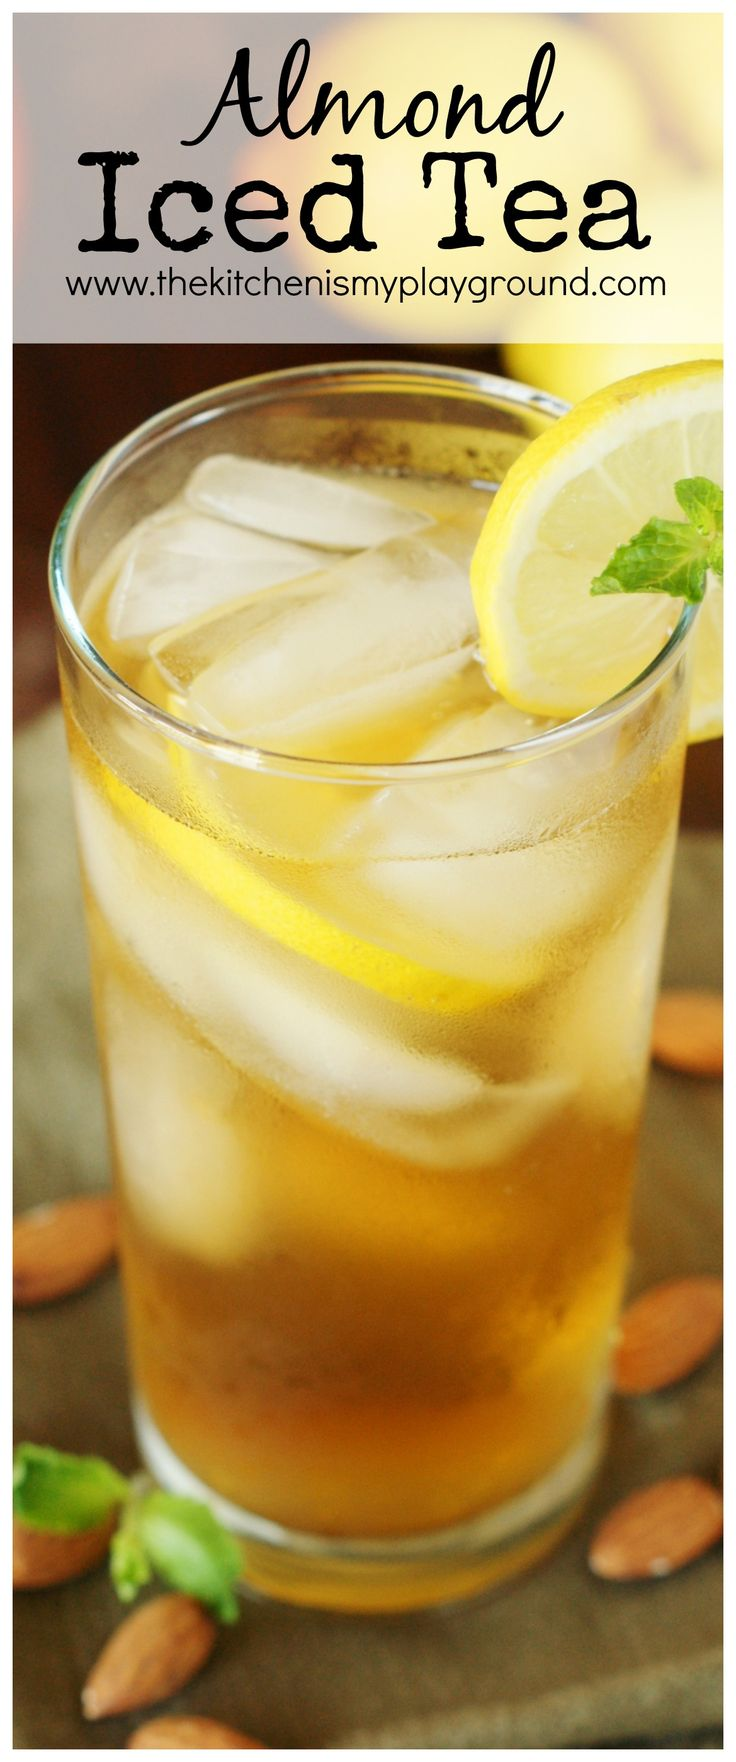 Almond Iced Tea ~ a refreshing and flavorful twist on your sweet tea!   www.thekitchenismyplayground.com